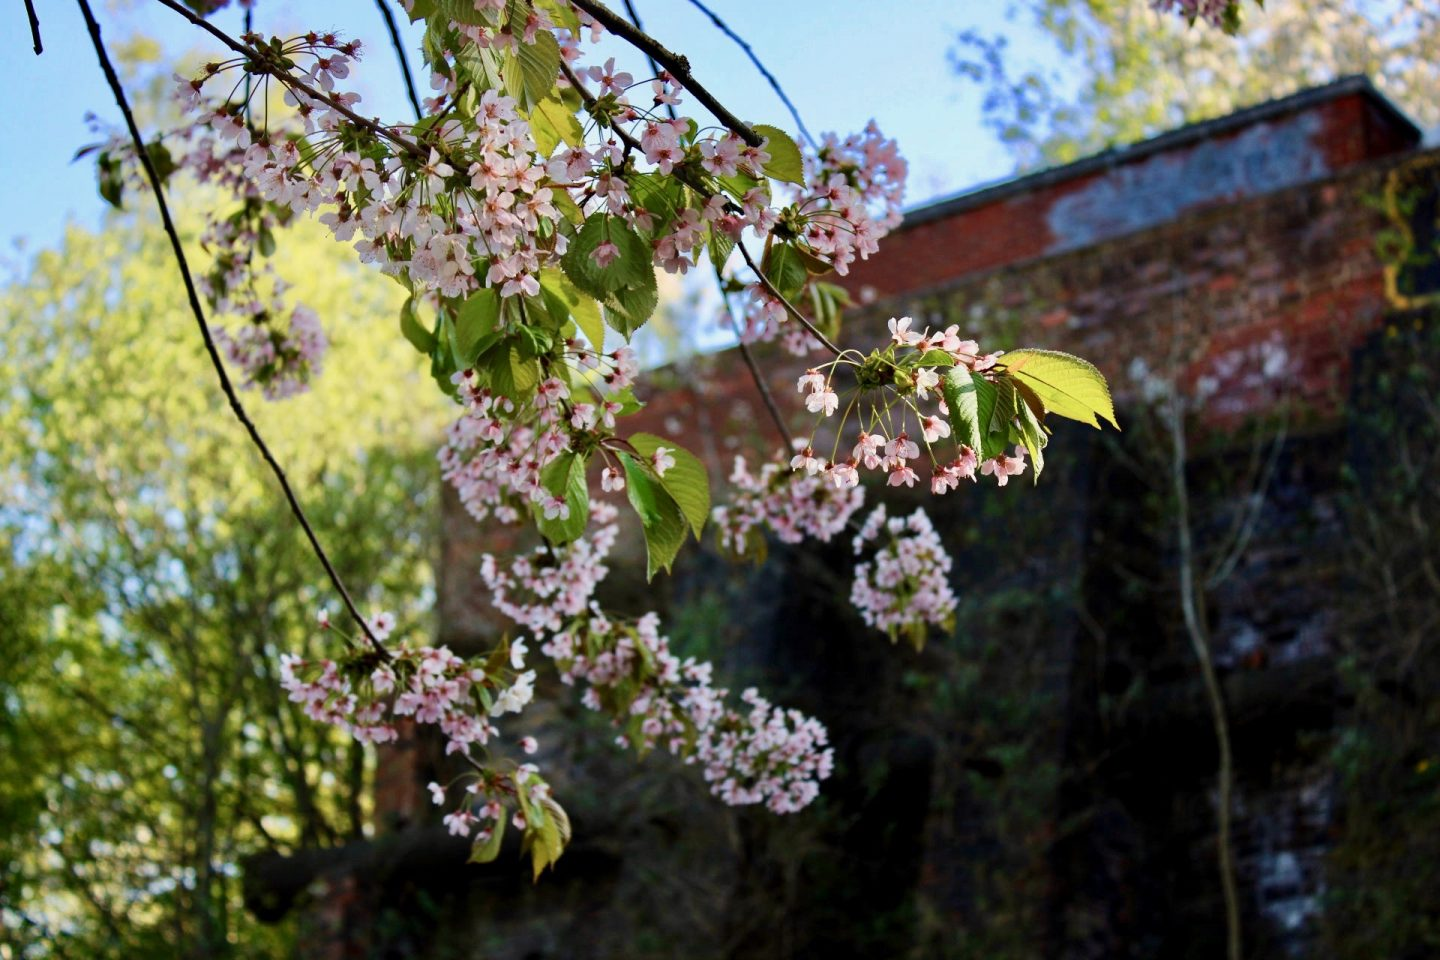 Daily lockdown exercise walk: blossom shot from underneath, with a brick wall out of focus in the background